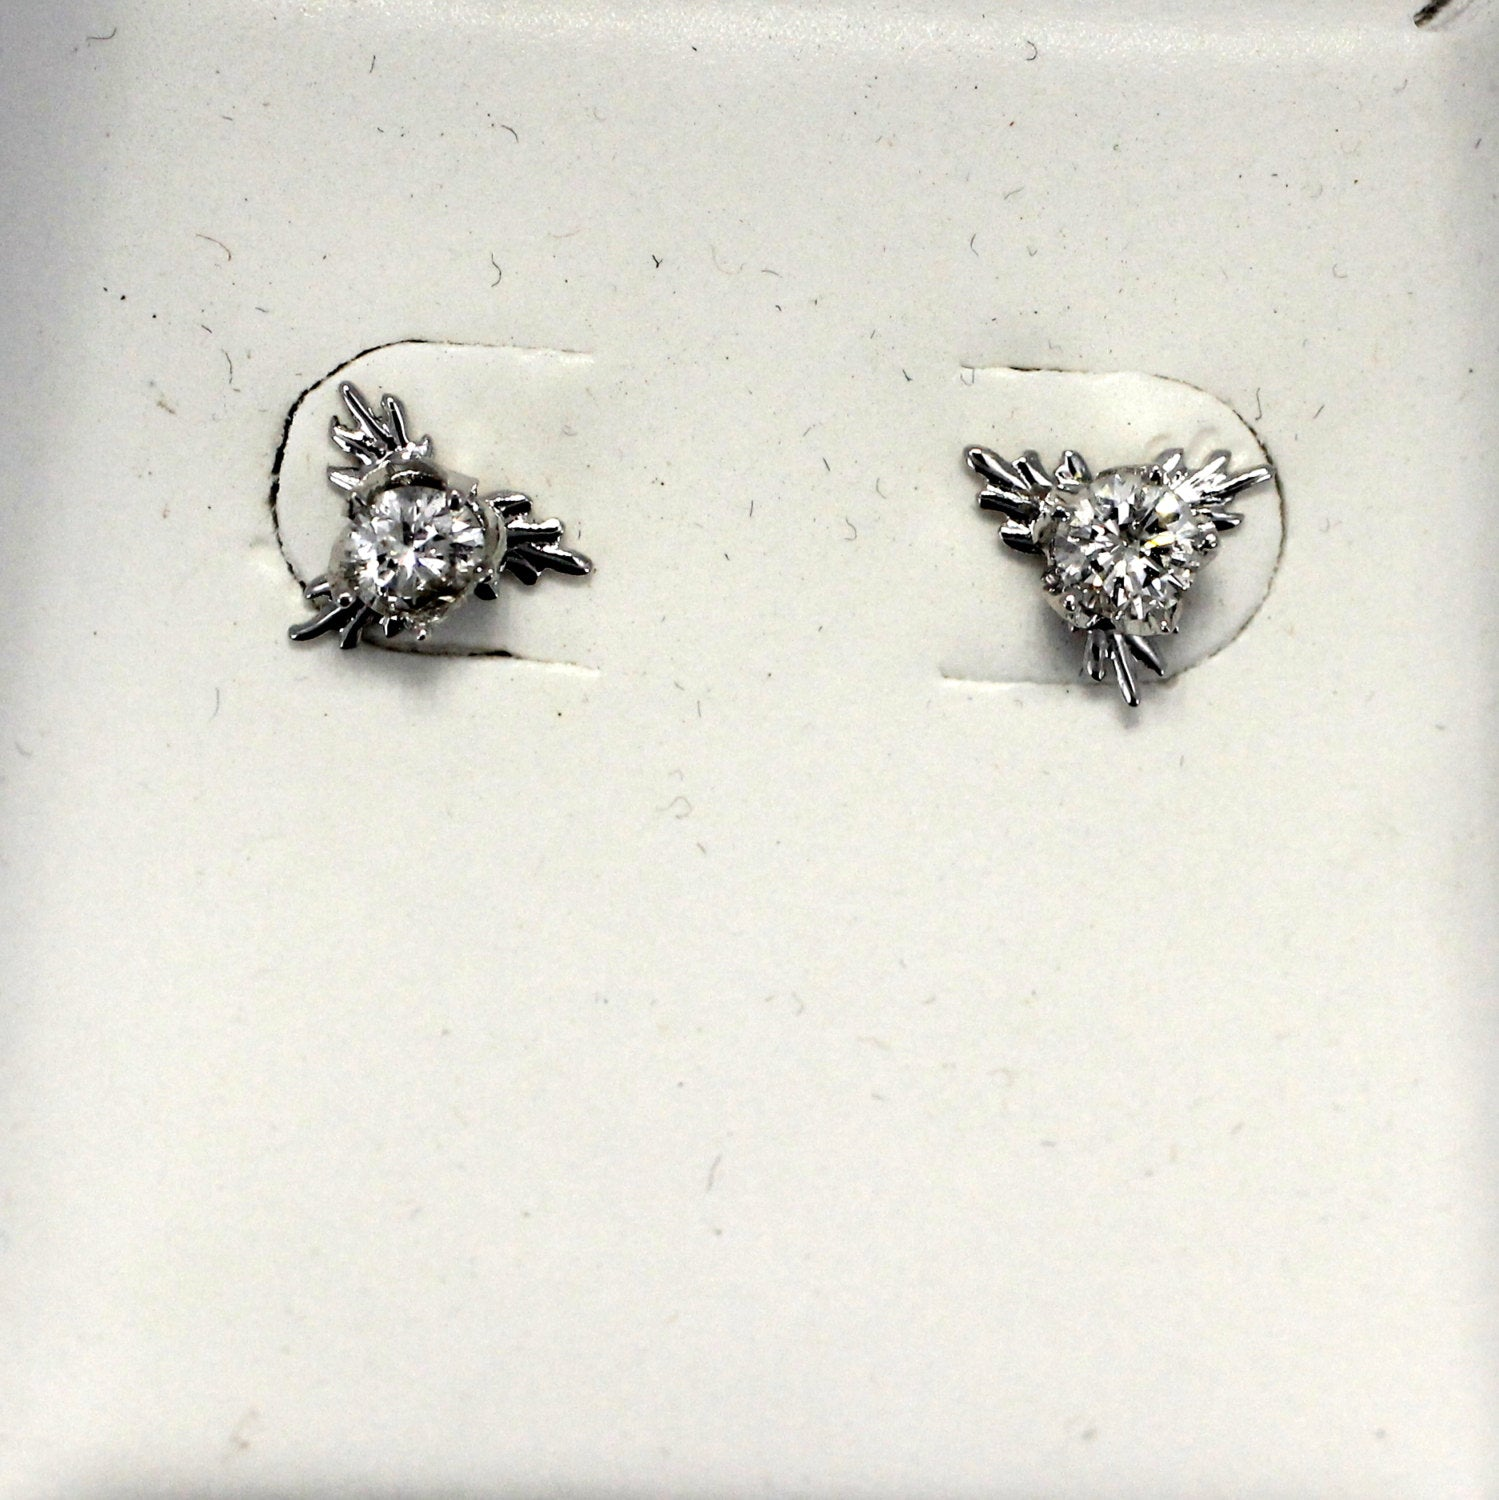 14kt. White Gold Cotton Boll Earrings